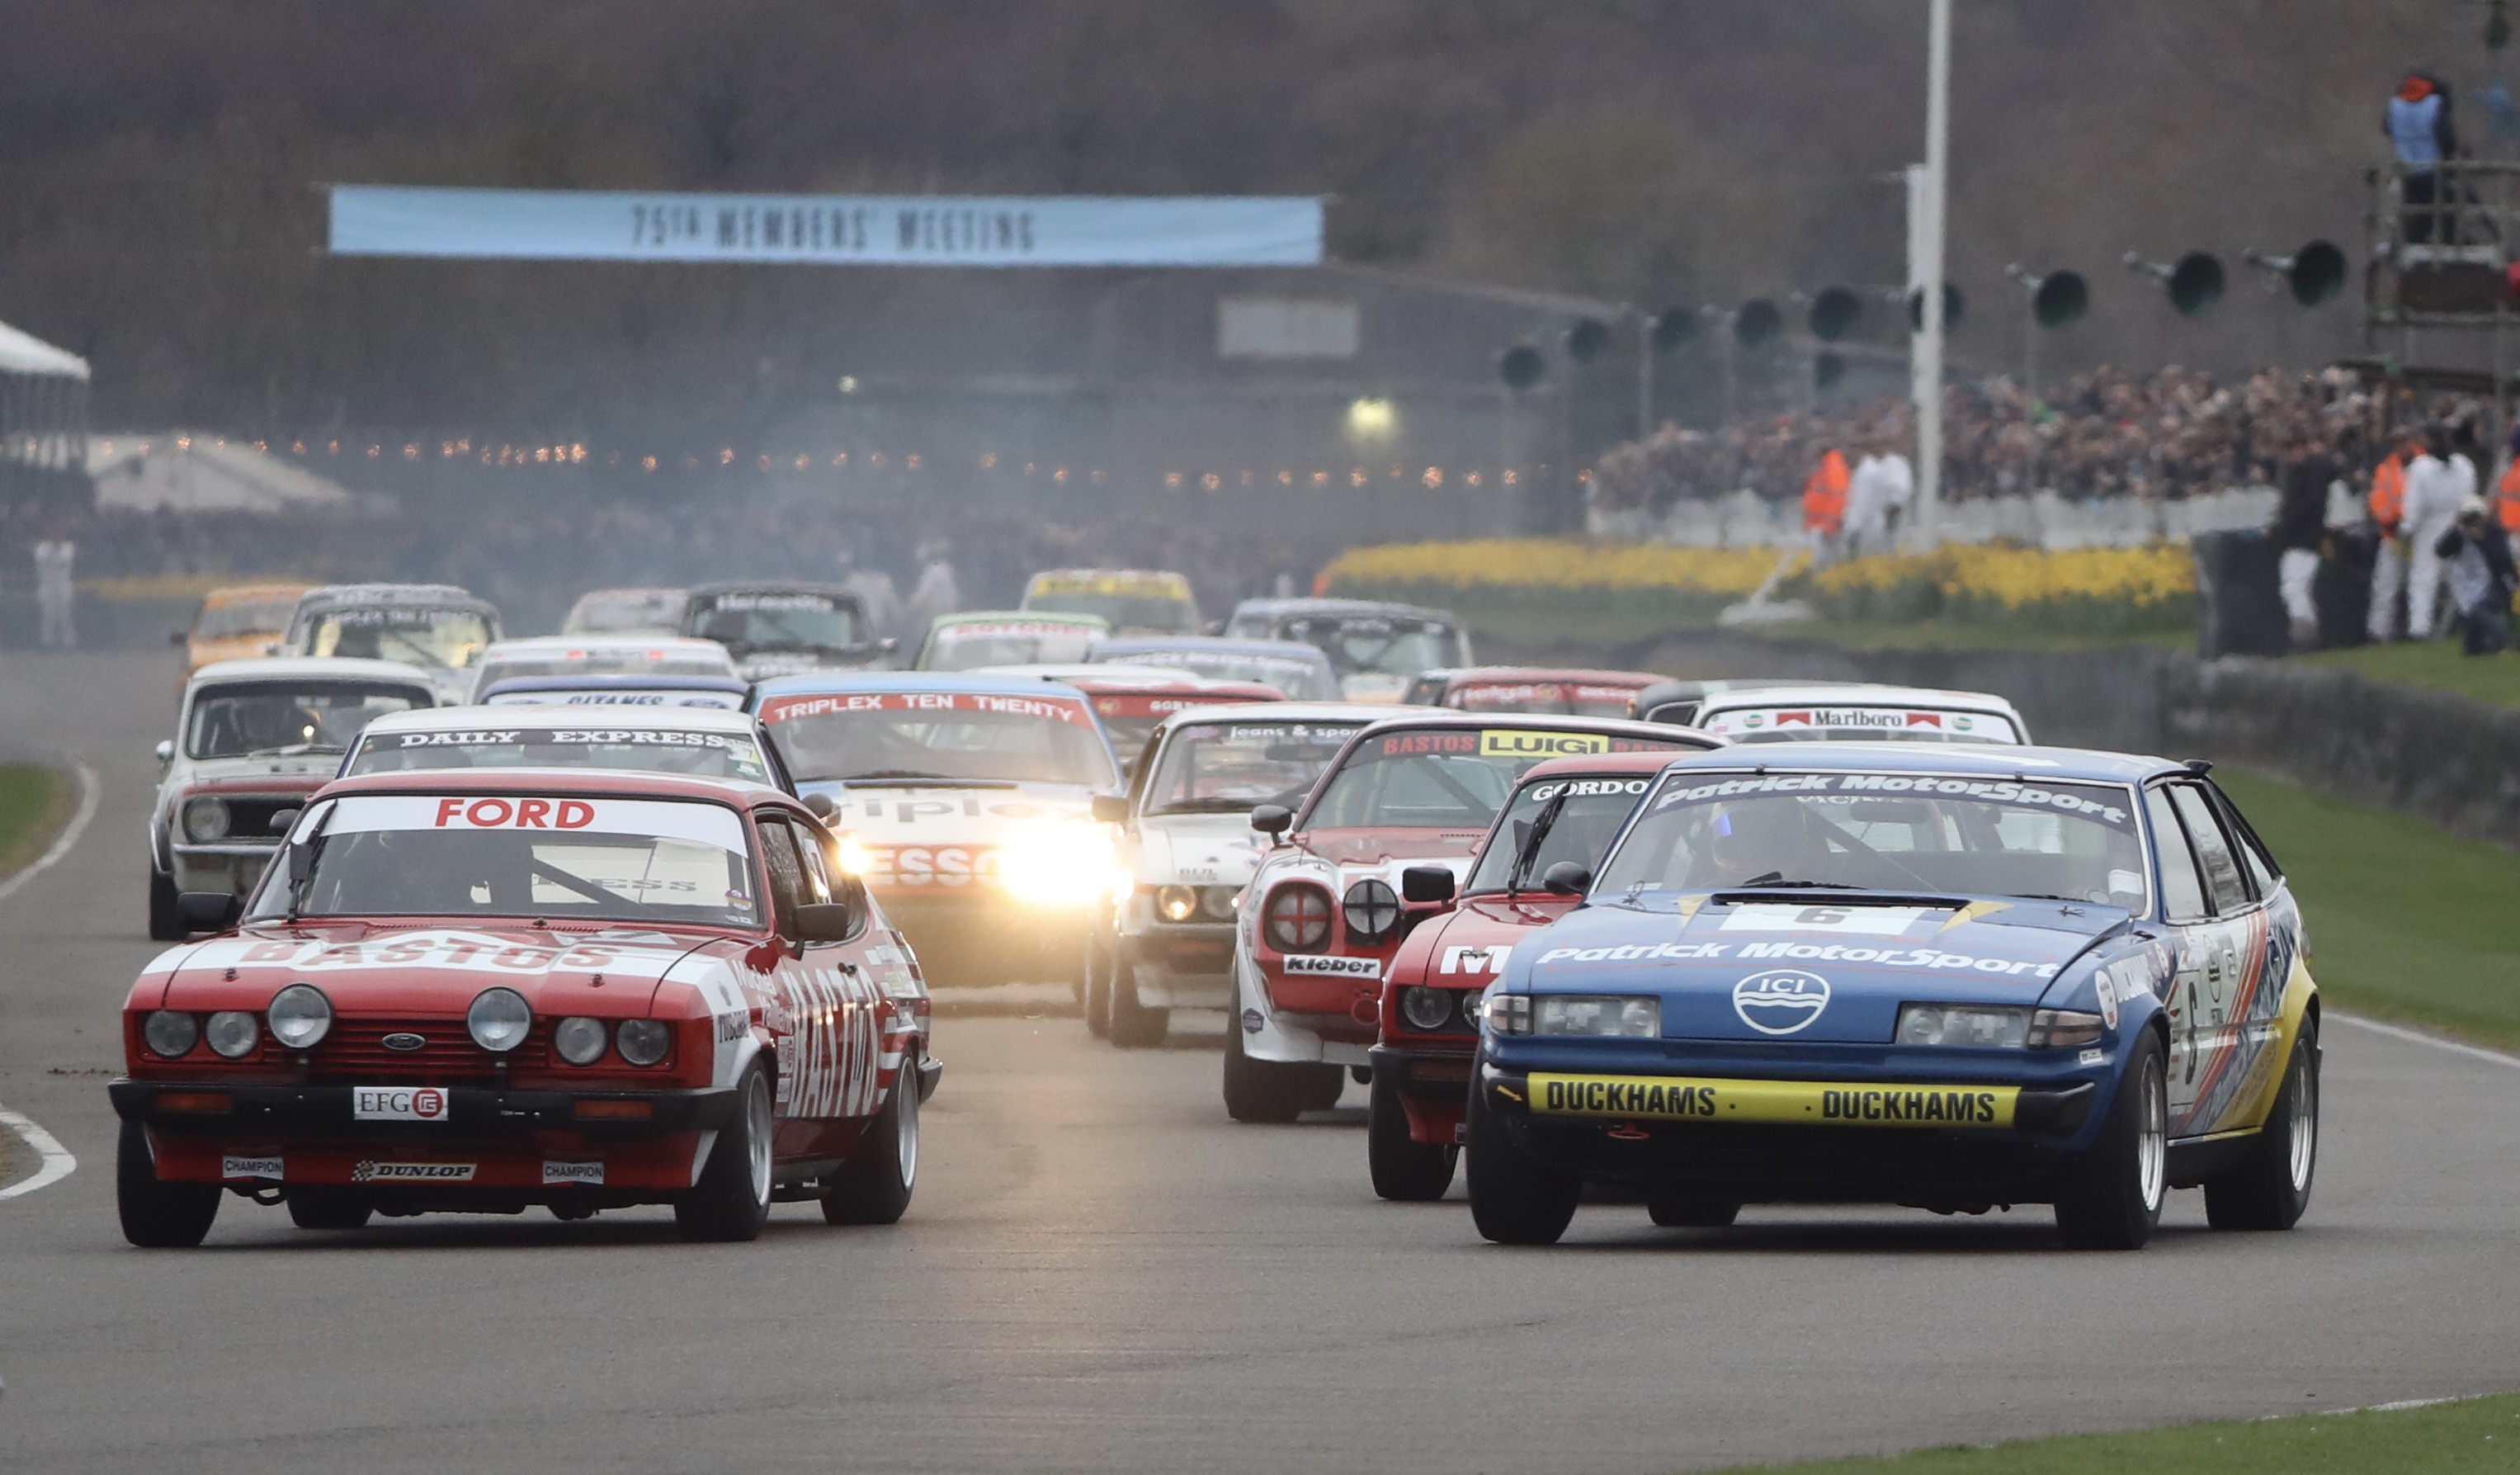 The JD Classics Patrick Motorsport Rover SD1 got away to a flying start during the Gerry Marshall Trophy race